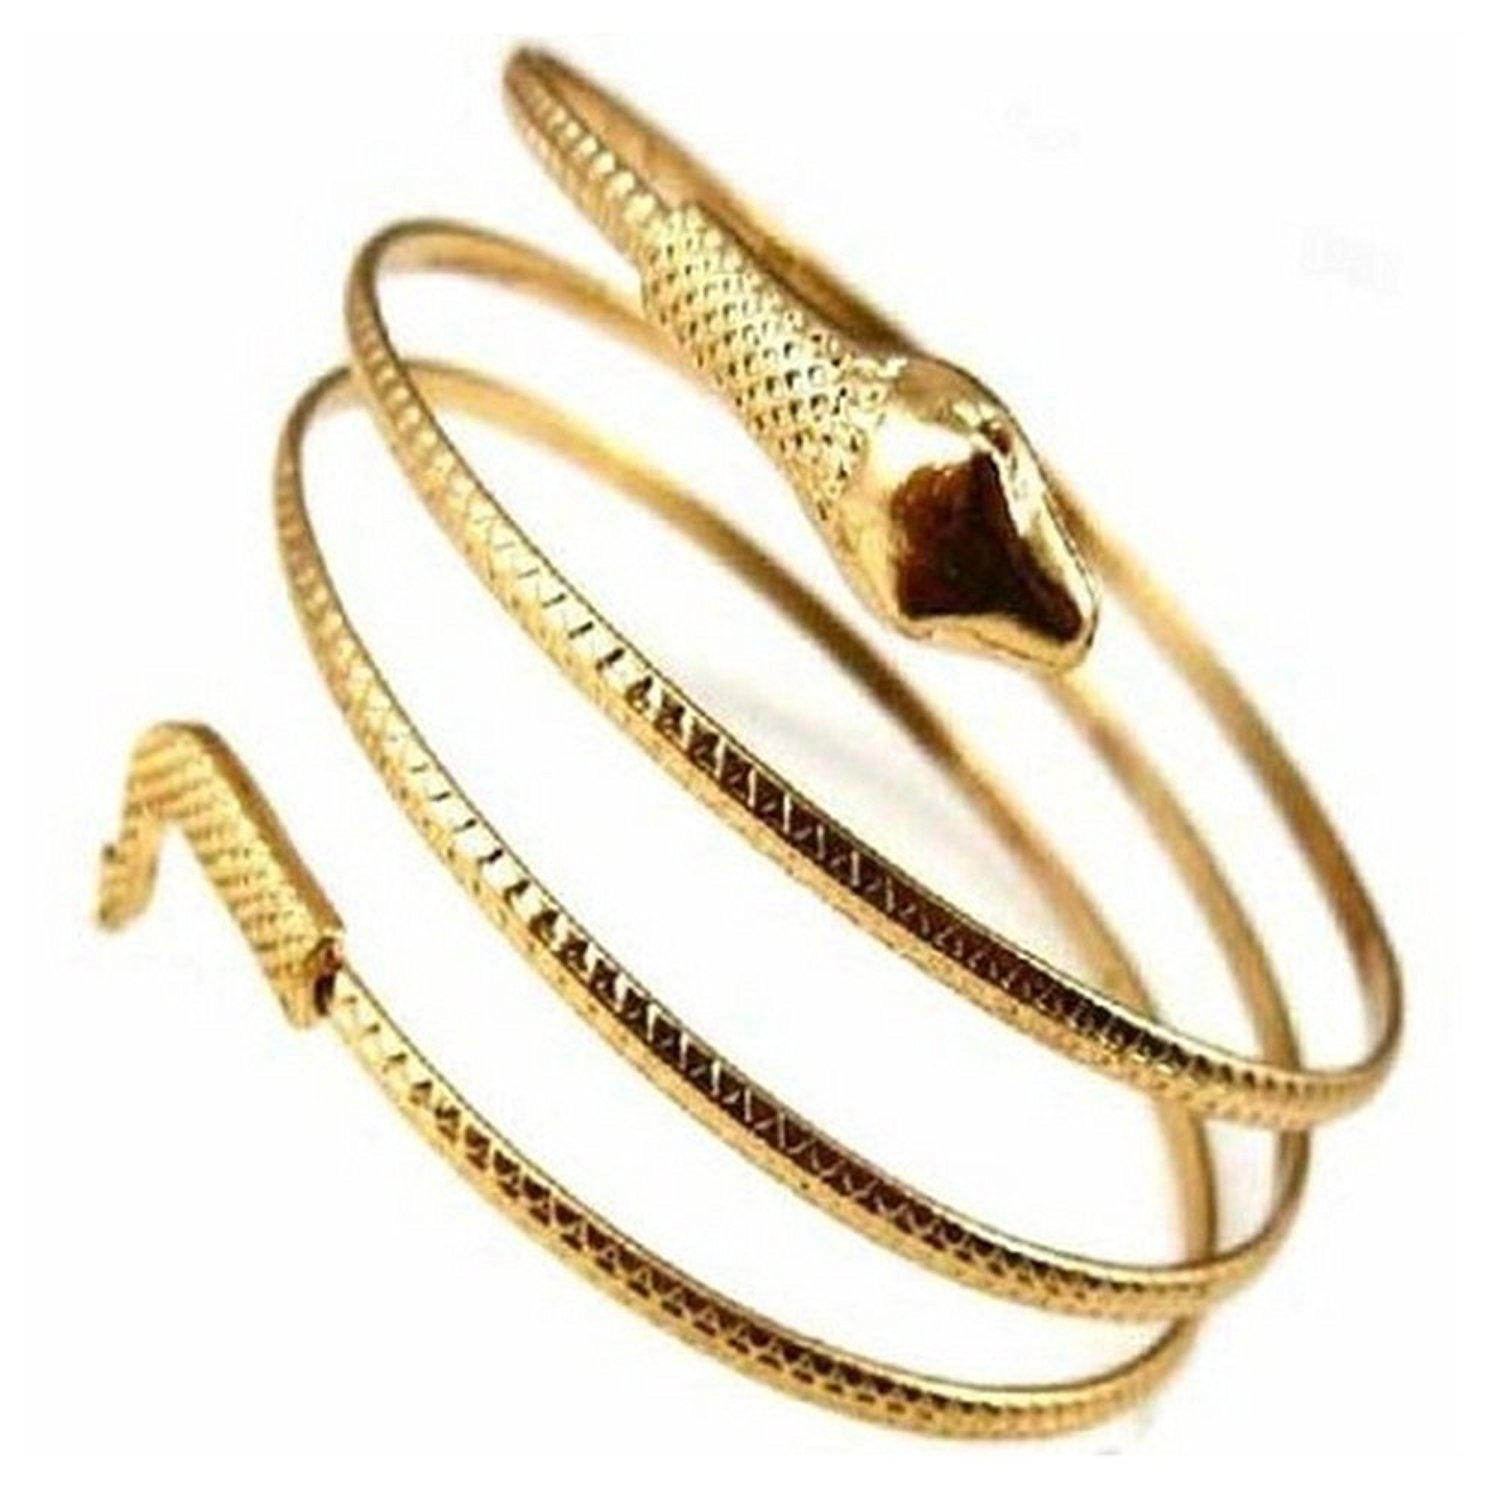 gold with silver product ball store beading visonjewelry screw clasp piece stainless rose s bangle com steel bangles type on dhgate cuff bracelet in bracelets online